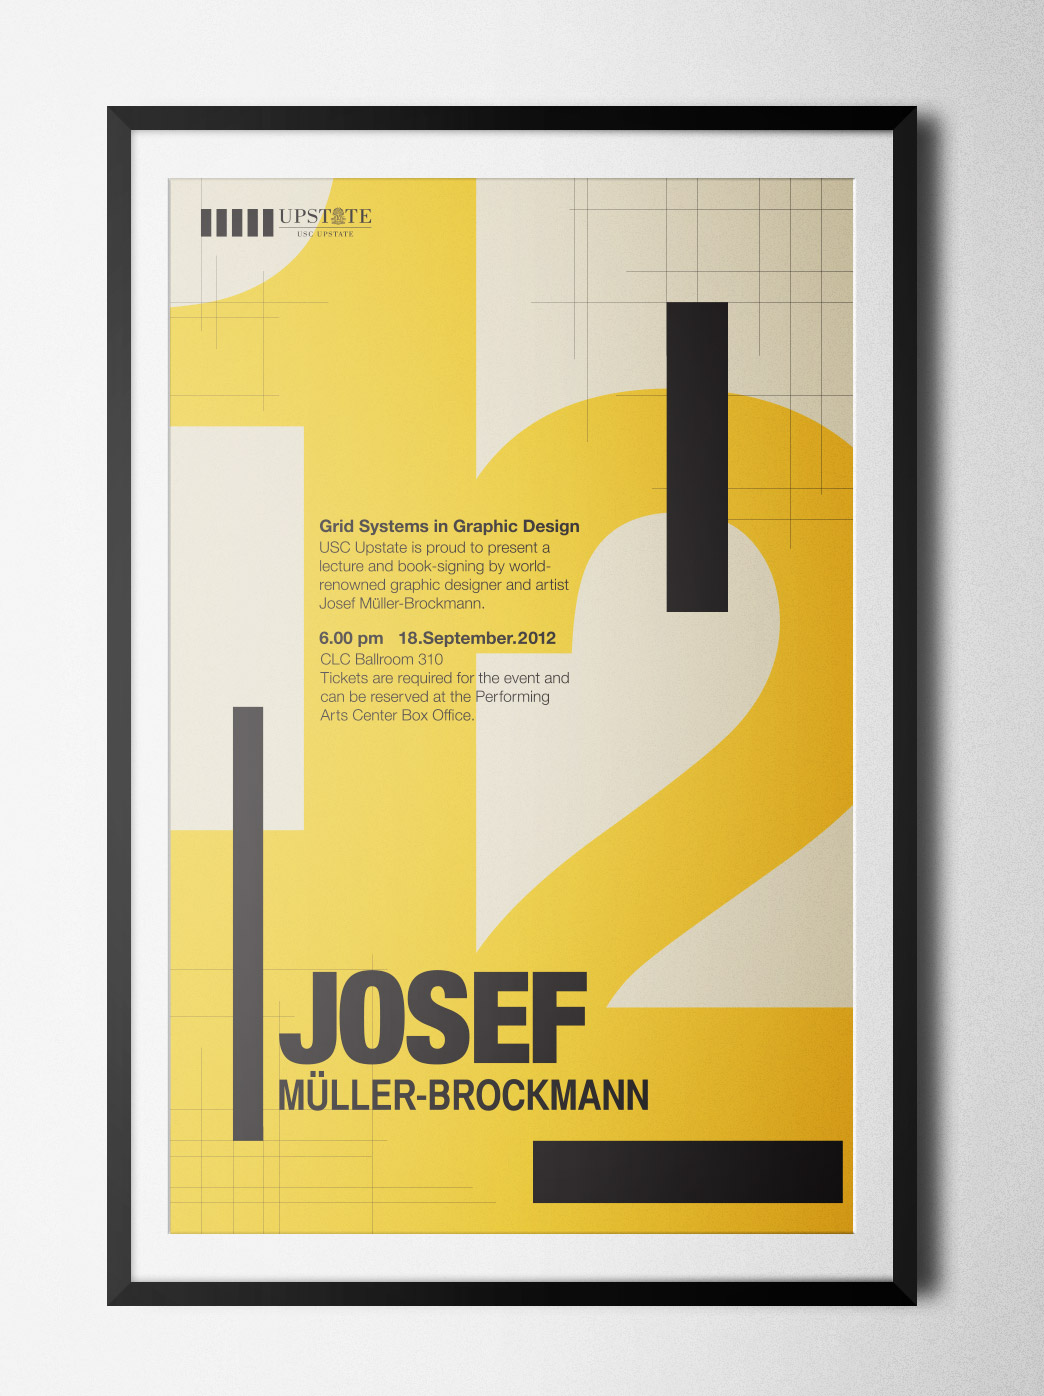 graphic design himself and countless other international typographic style artists and designers this poster aligns perfectly to a 3 pica grid